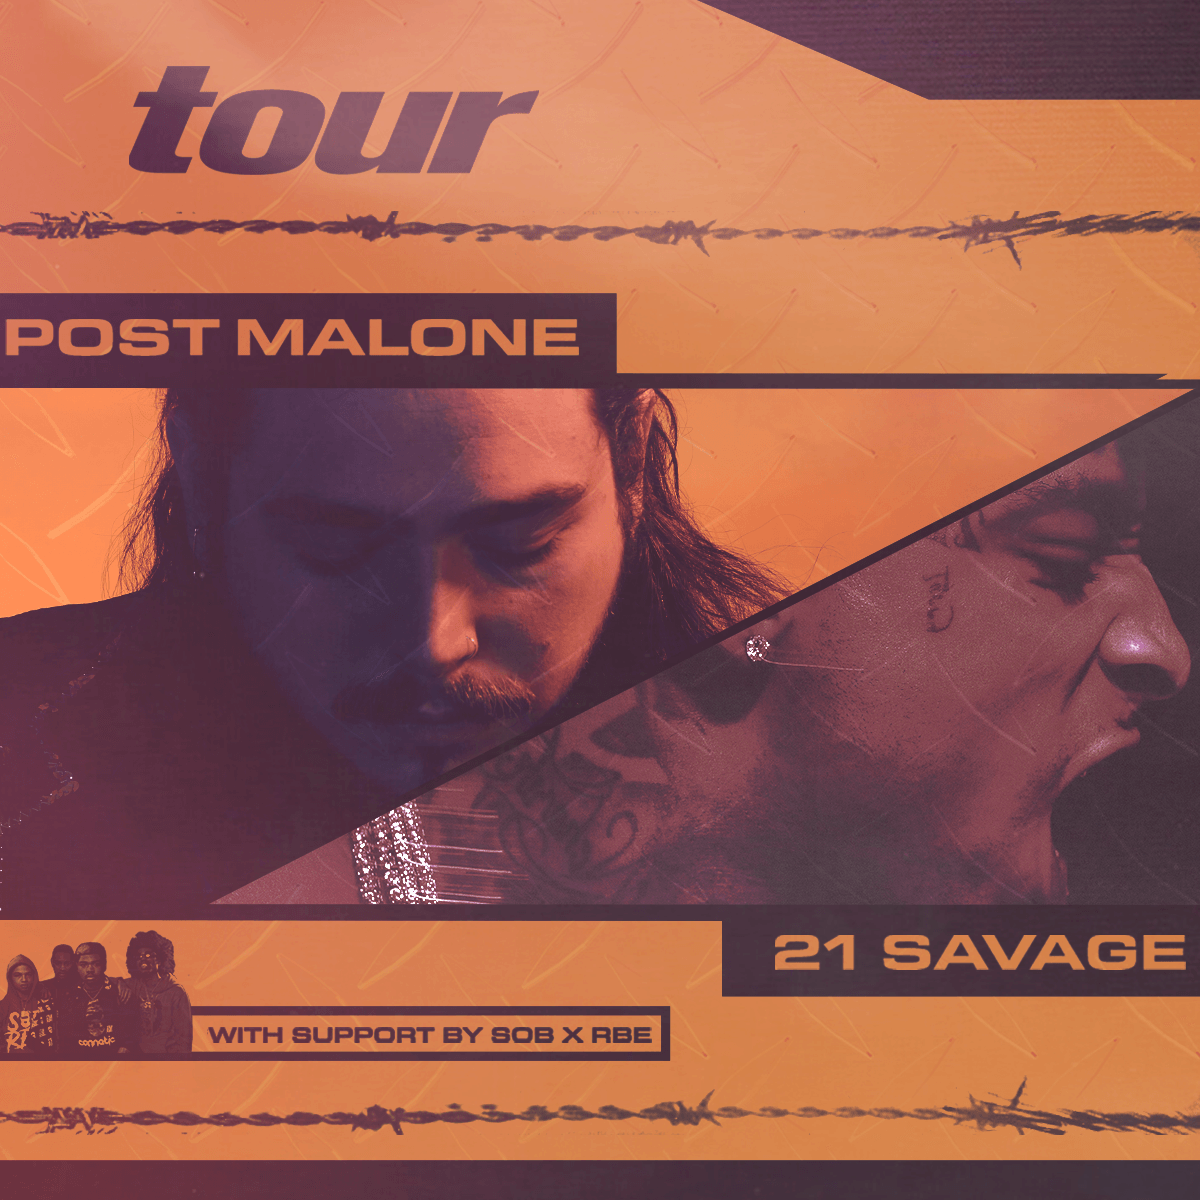 Post Malone Concert: POST MALONE WITH SOB X RBE, TRAE THA TRUTH AND PARIS